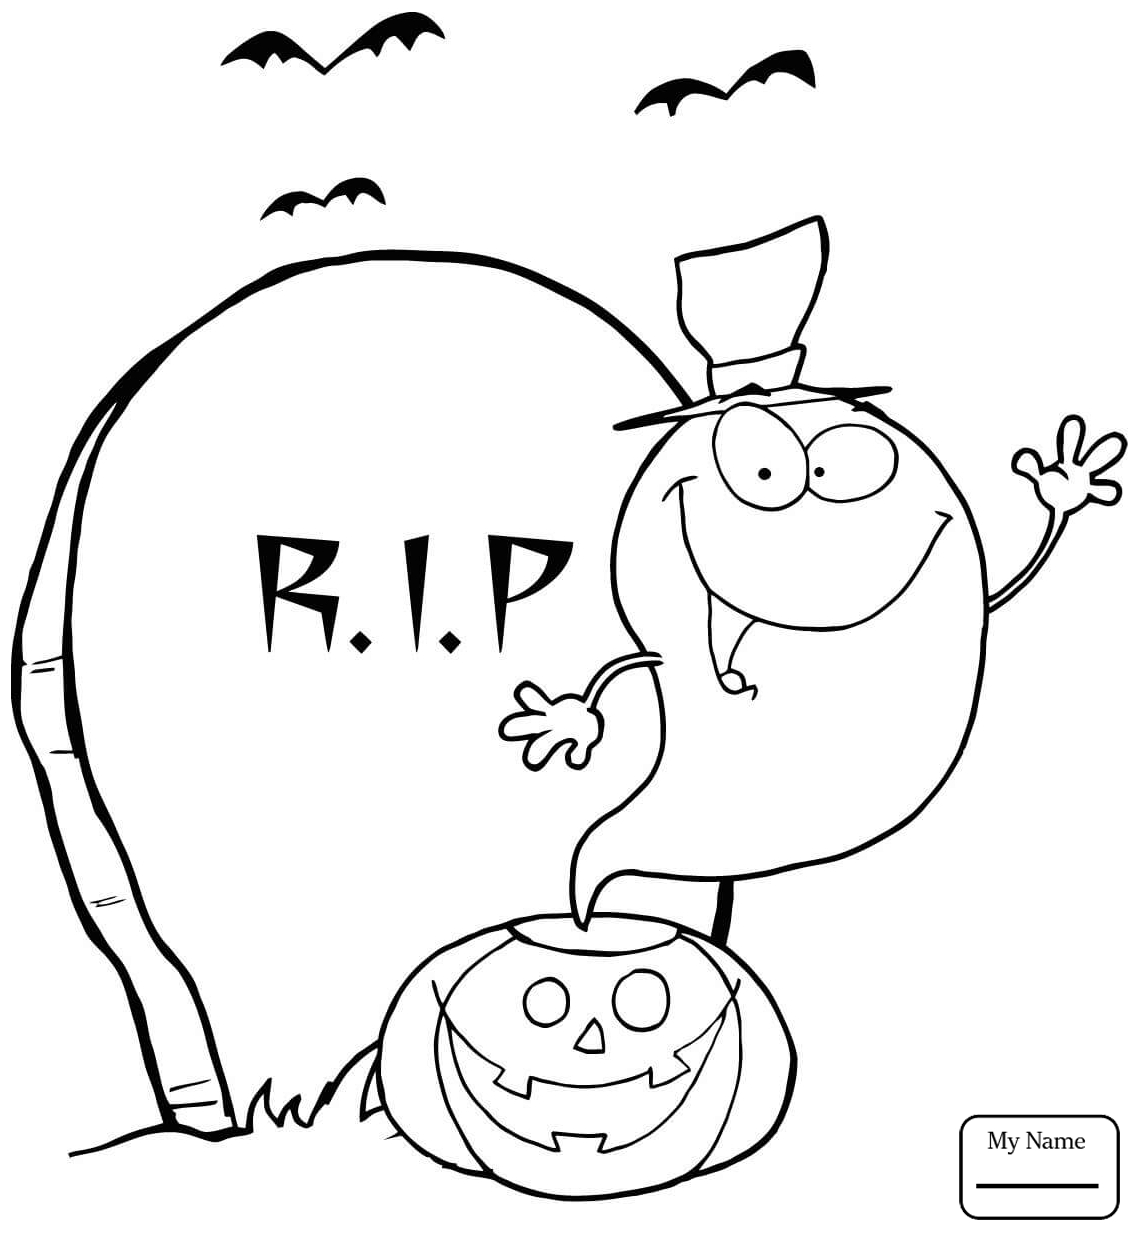 1139x1240 Coloring Pages For Kids Ghost Fantasy Mythology Cute Ghost Flying